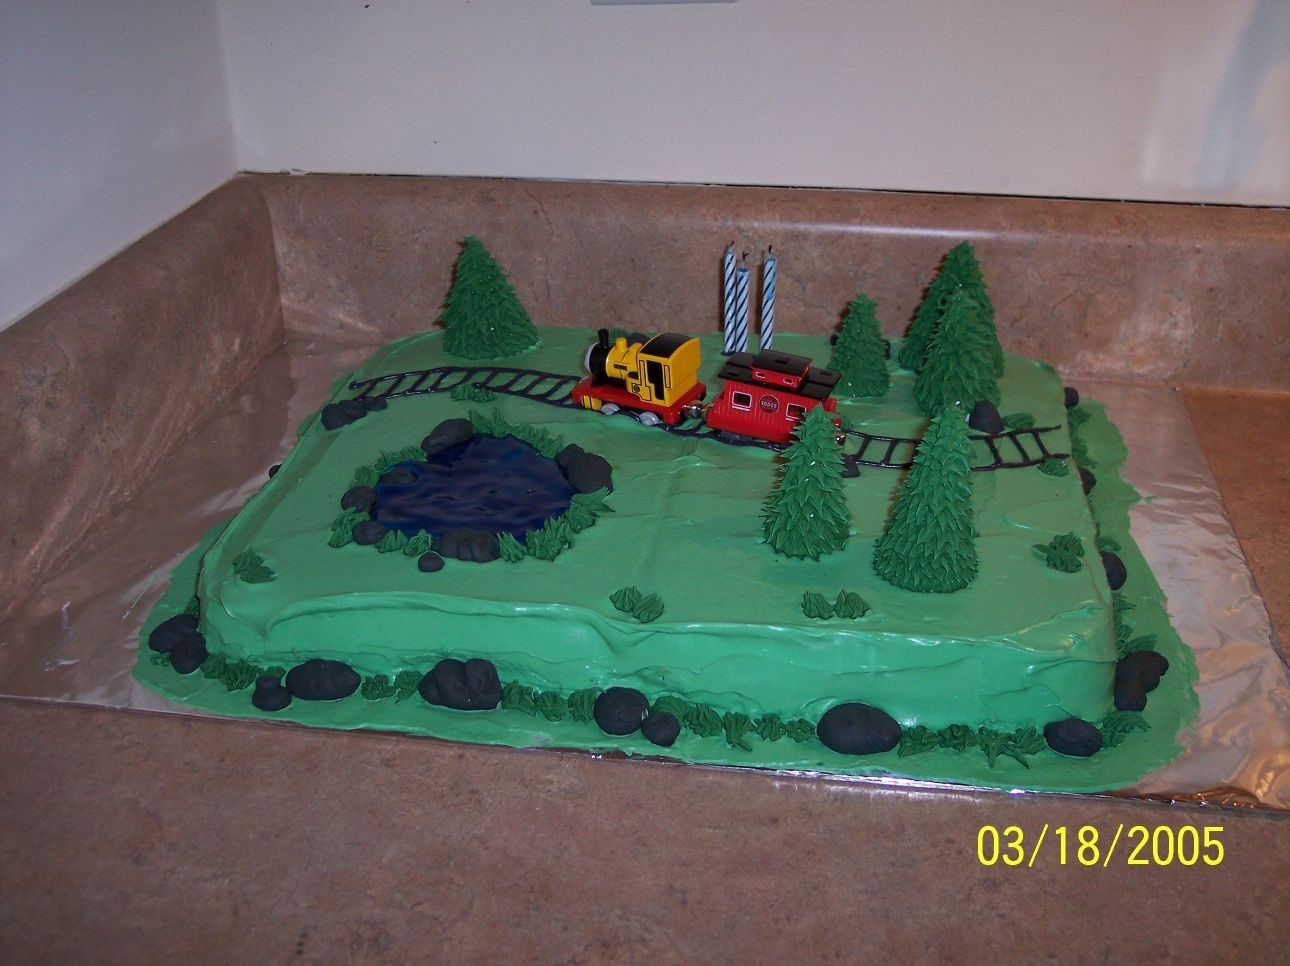 Train Cake This was my first attempt at a more creative cake. Our son was turning 3 and in love with trains. It is a gluten-free cake with buttercream...